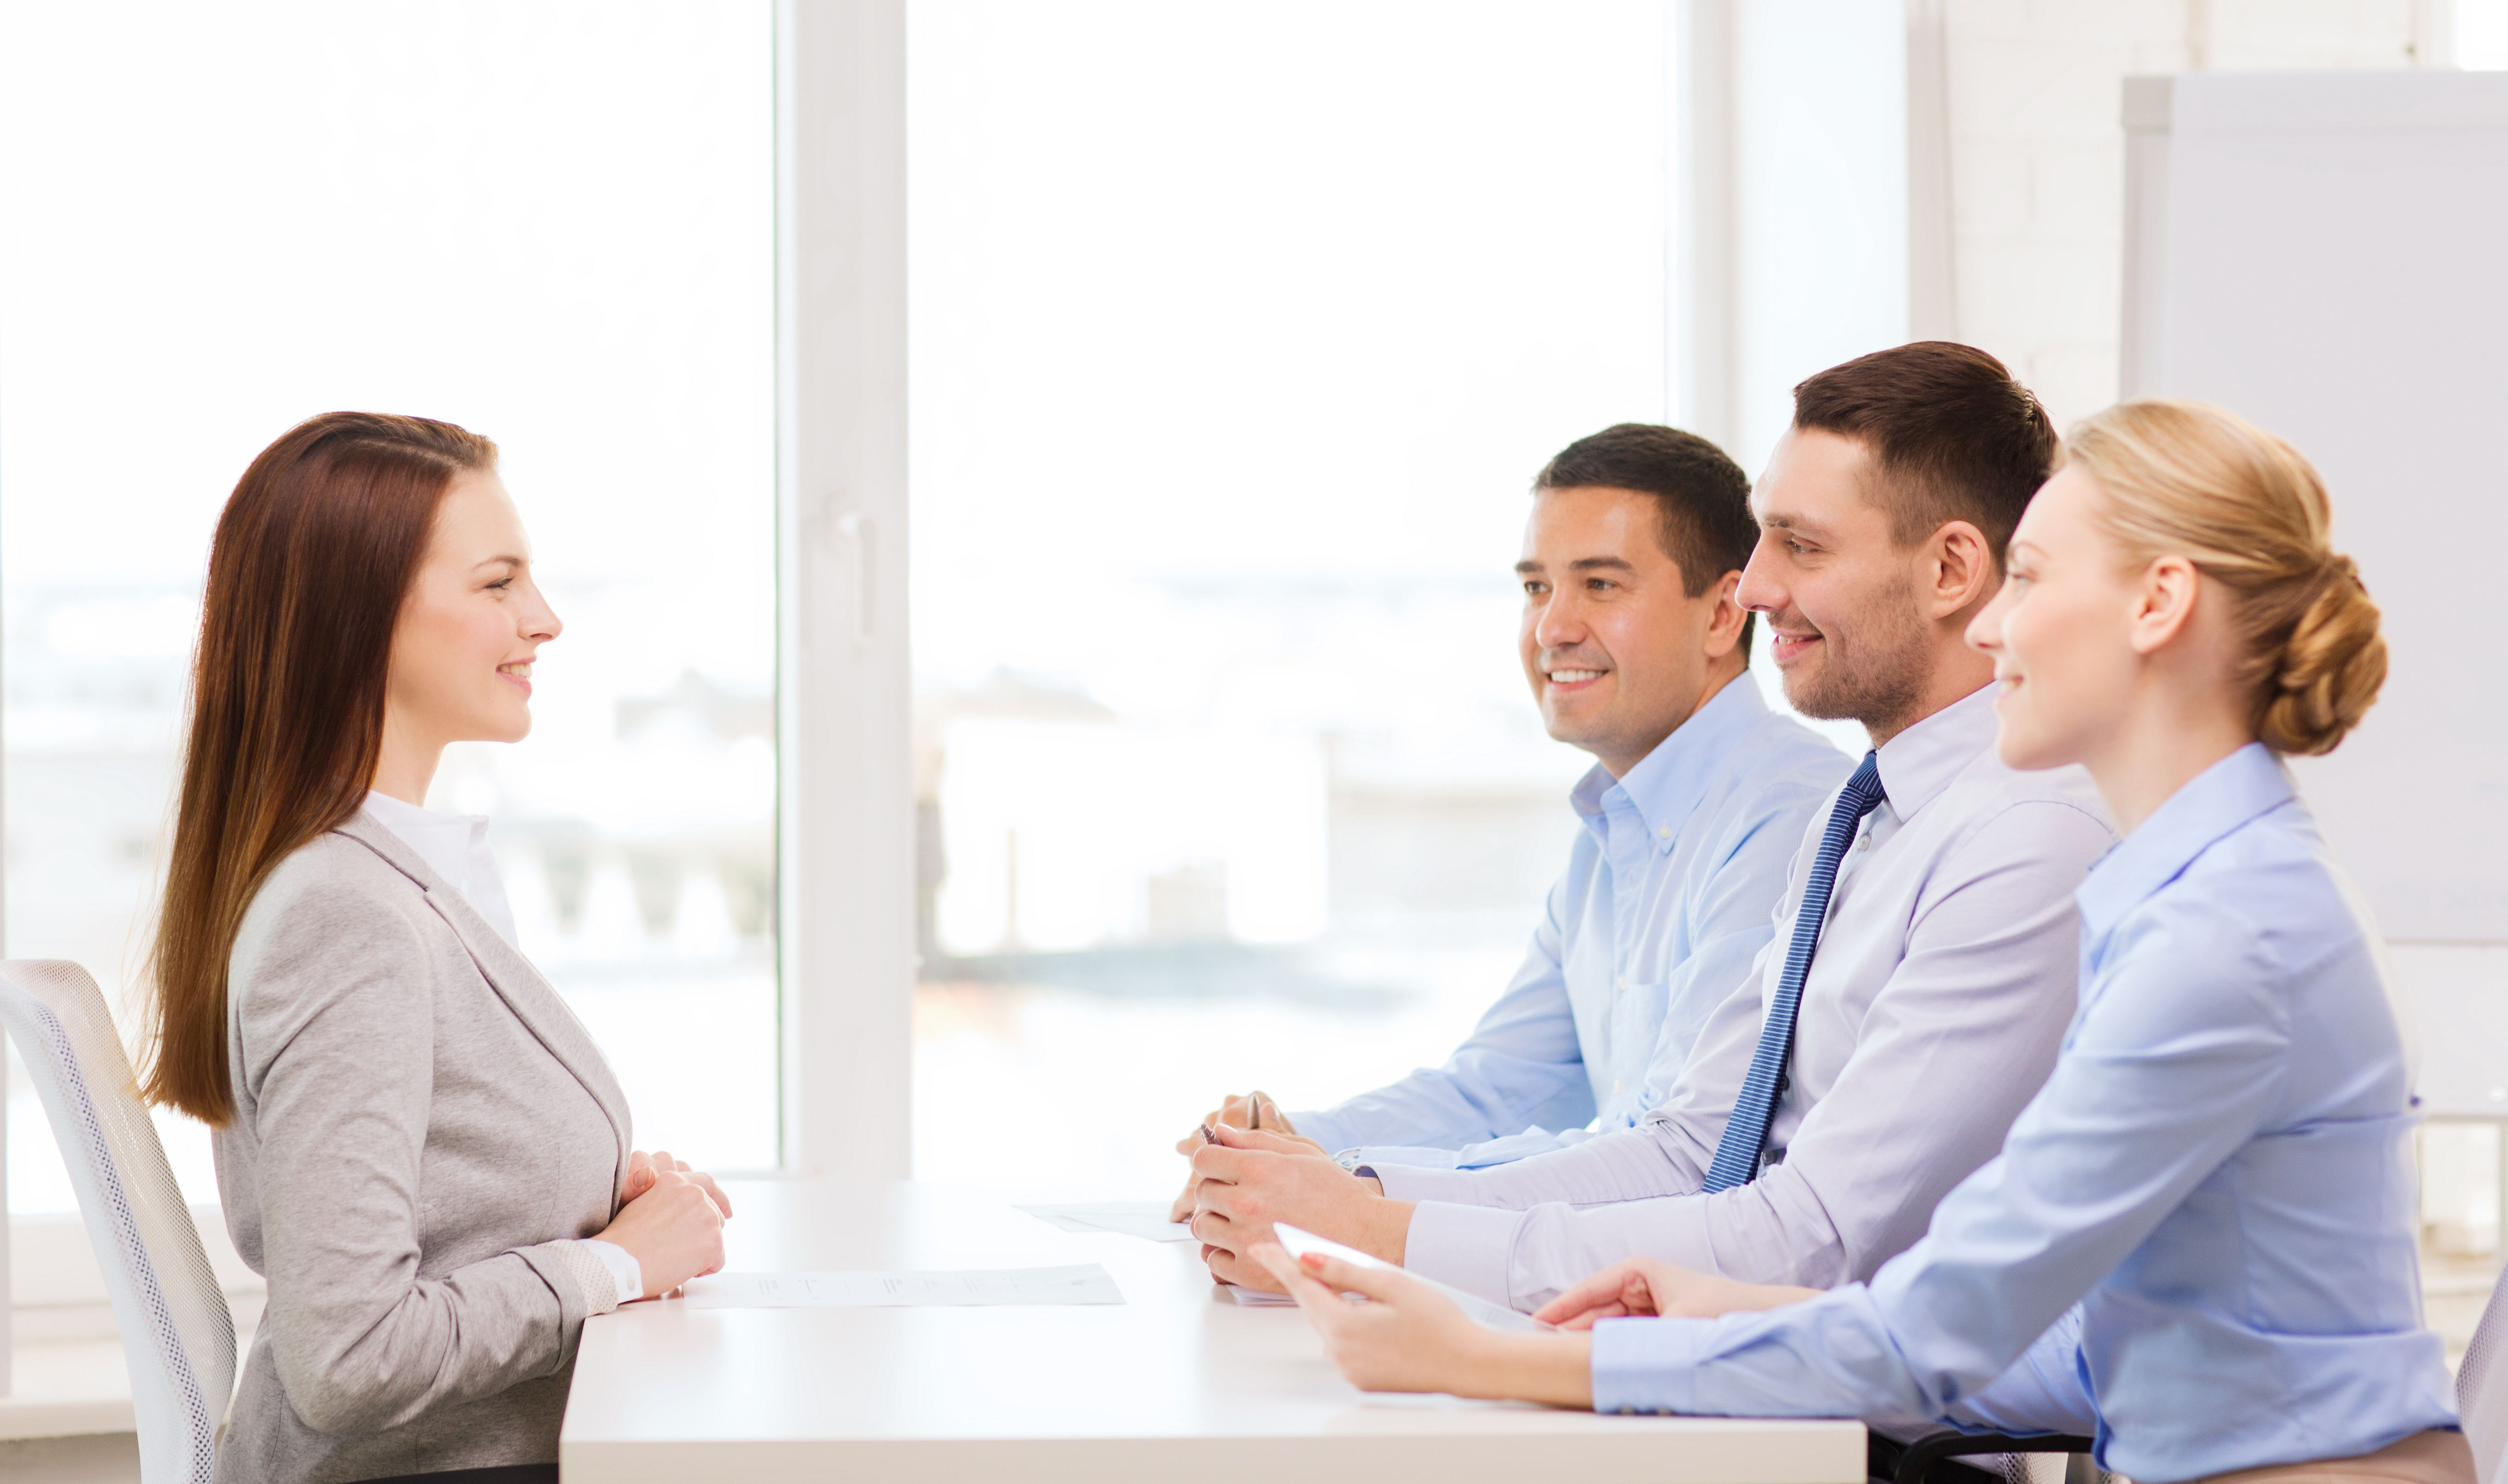 how to raise your interview self confidence leopard solutions long and or difficult job search the good news is that you can do something about it below are a few tips on raising your interview self confidence